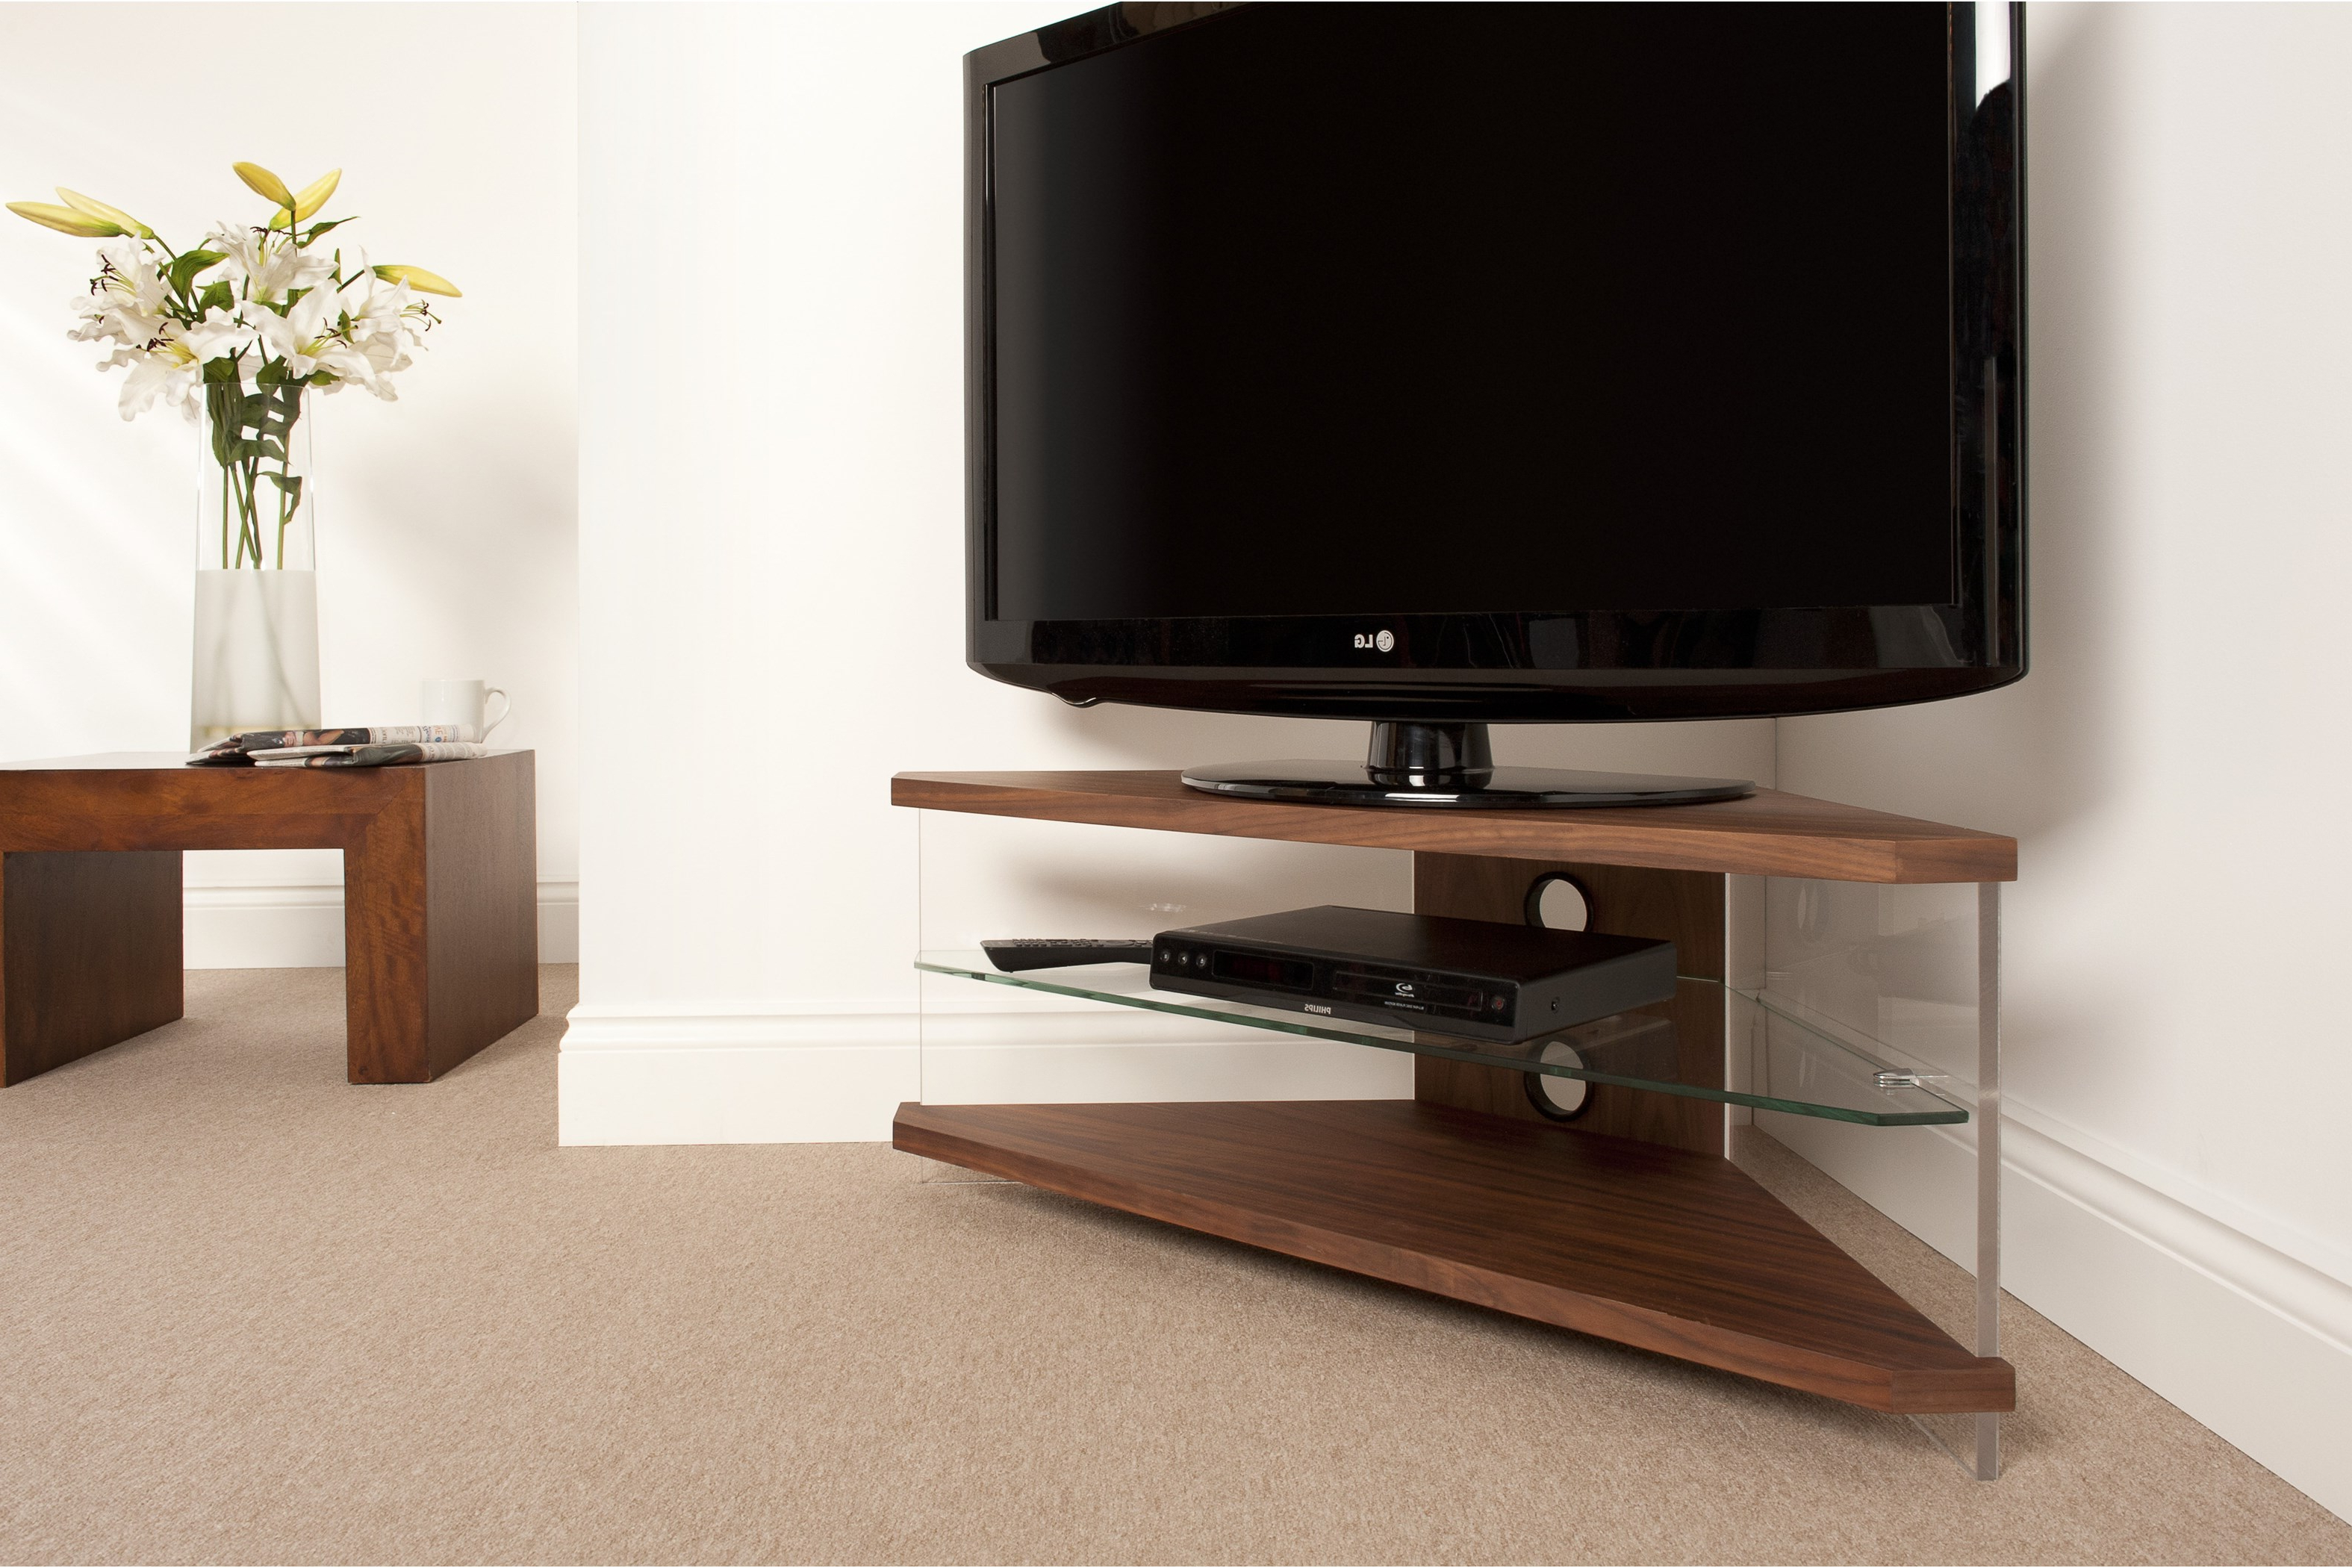 Well Liked Big Tv Stand Wood Lots Furniture Stands With Fireplace Wooden Regarding Corner Tv Tables Stands (View 15 of 20)